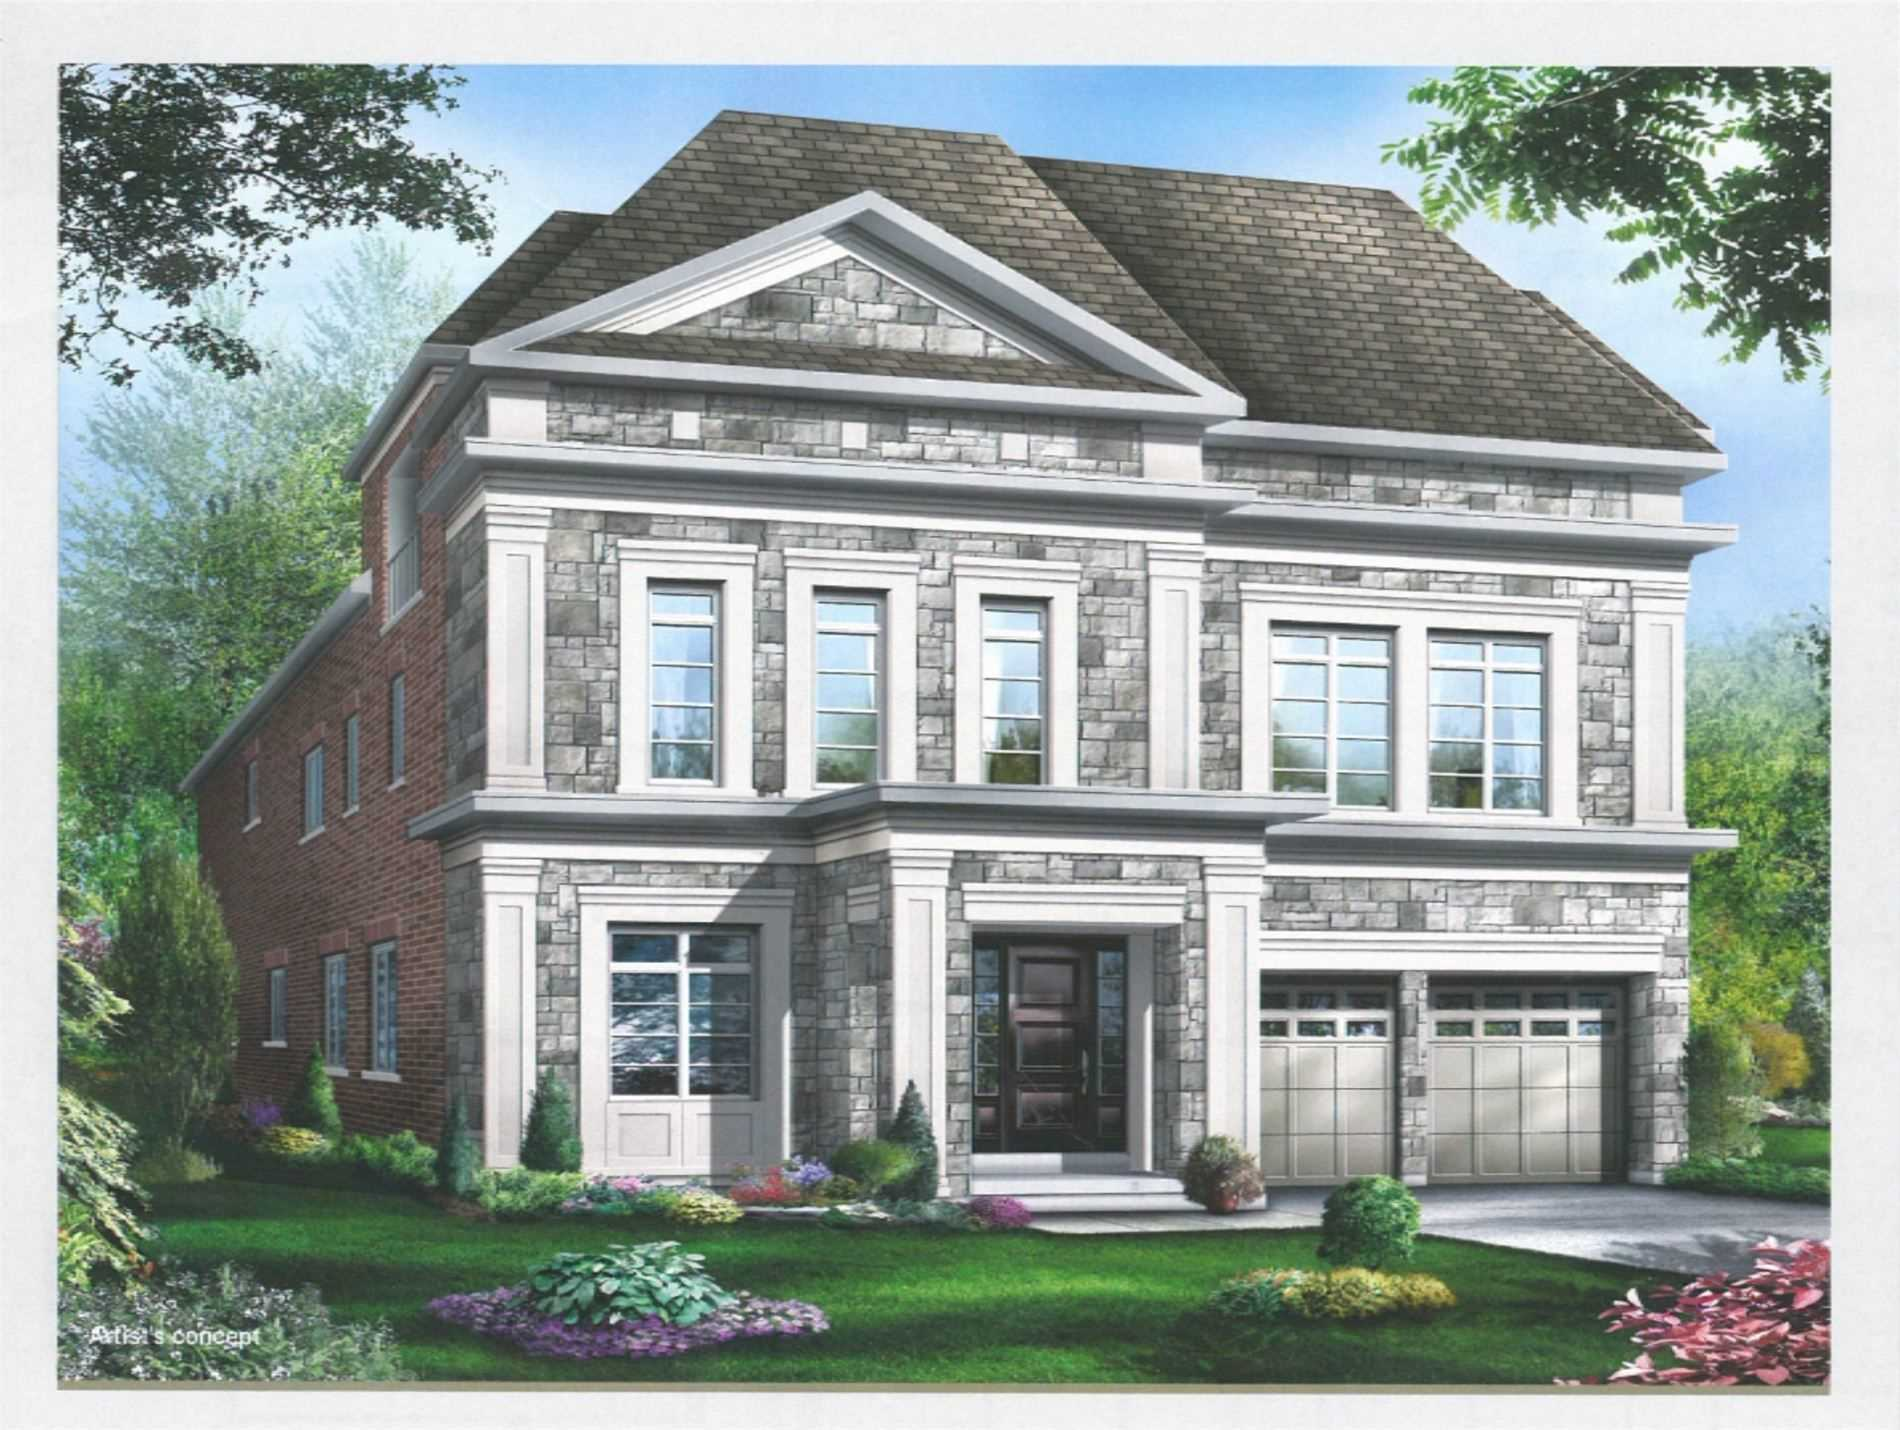 151 Hillsview Dr, Richmond Hill, Ontario L4C1T2, 4 Bedrooms Bedrooms, 14 Rooms Rooms,7 BathroomsBathrooms,Detached,For Sale,Hillsview,N4833647